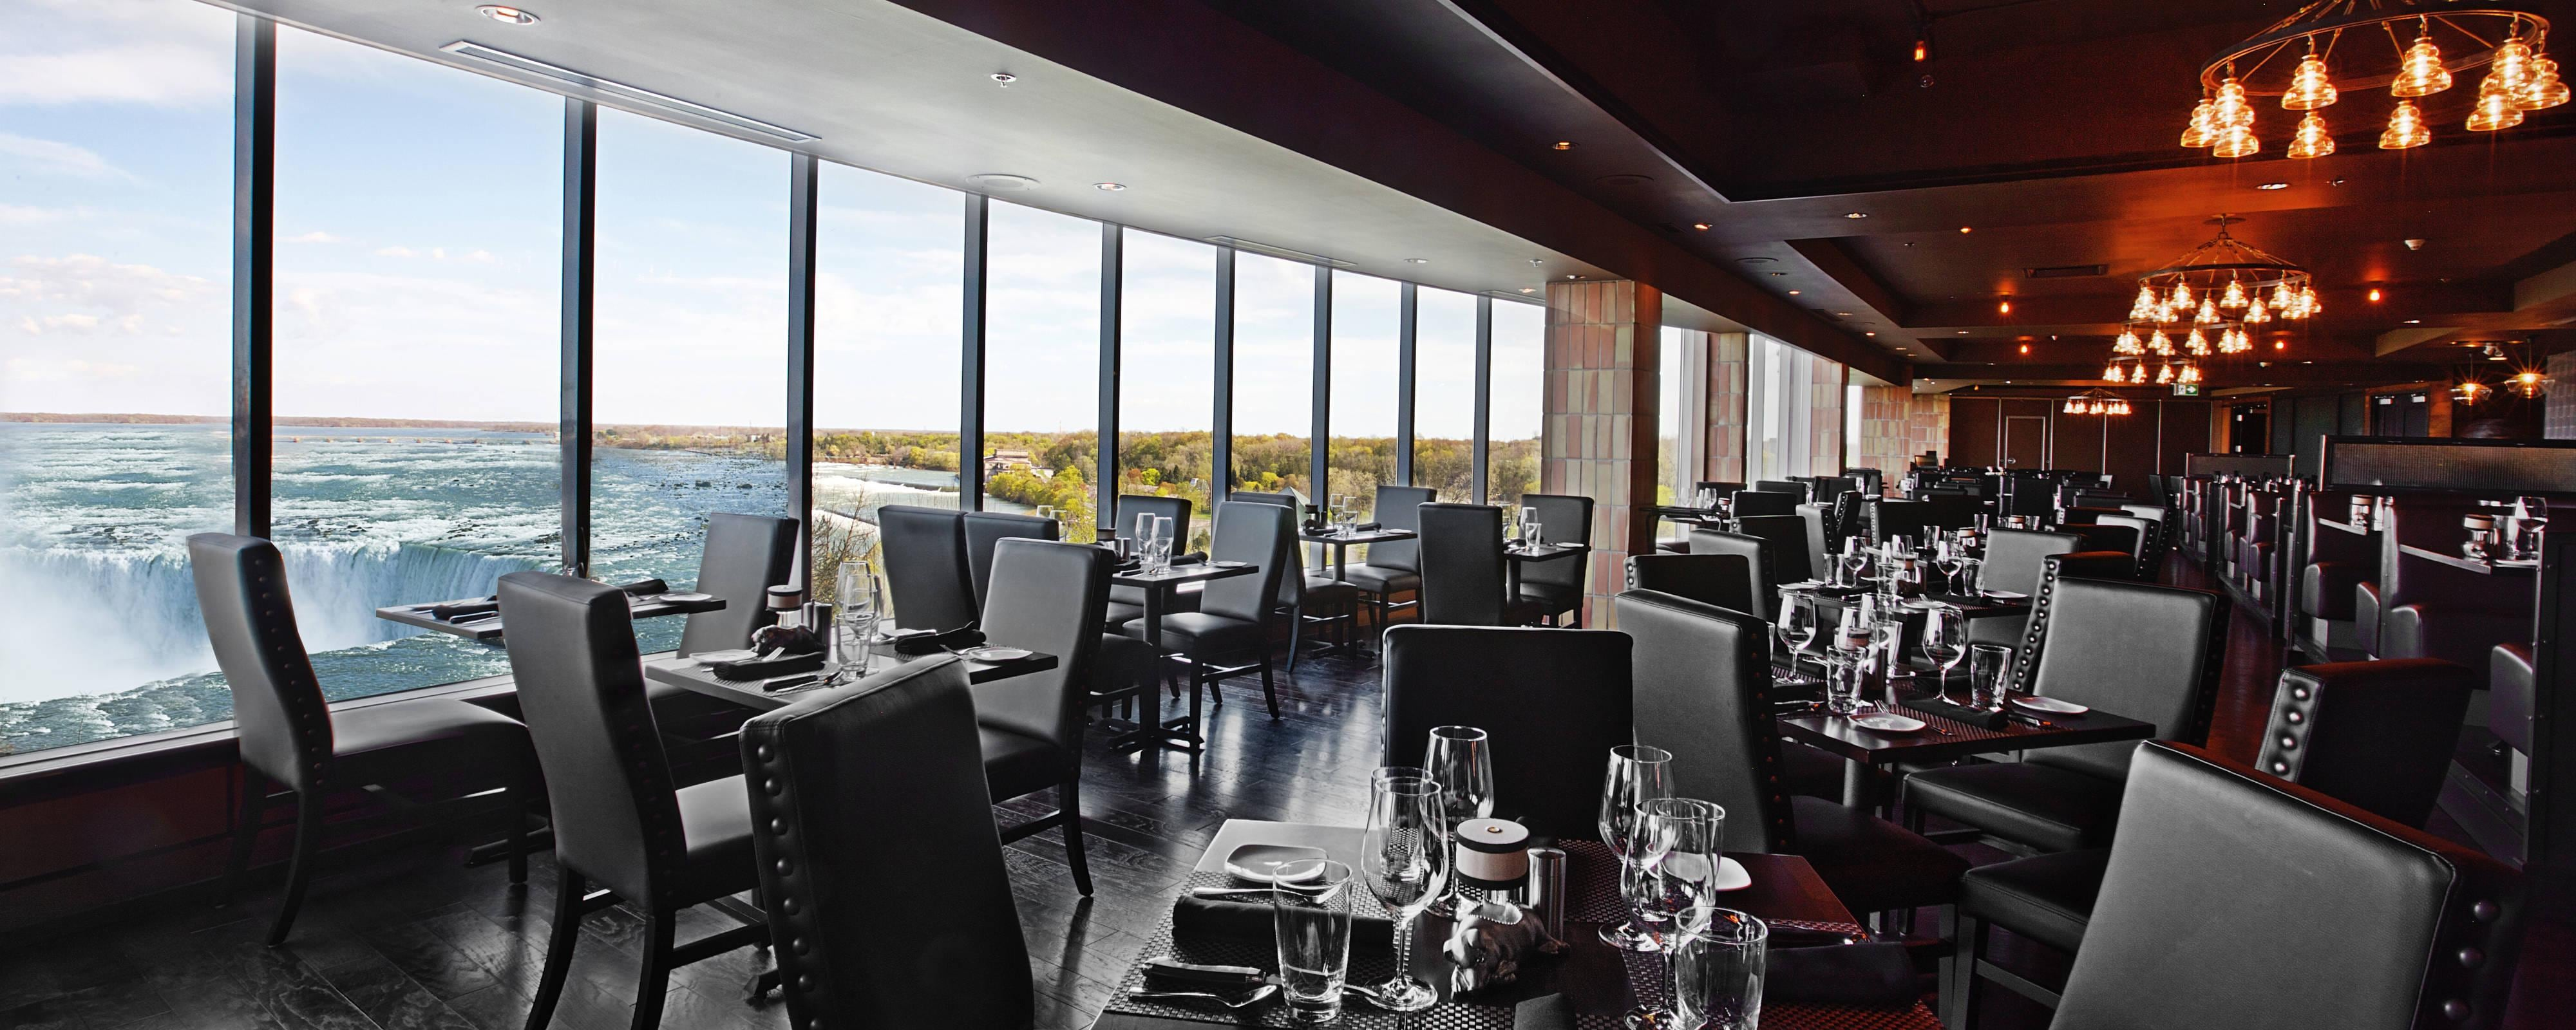 Niagara Fallsview Restaurants Niagara Falls Marriott